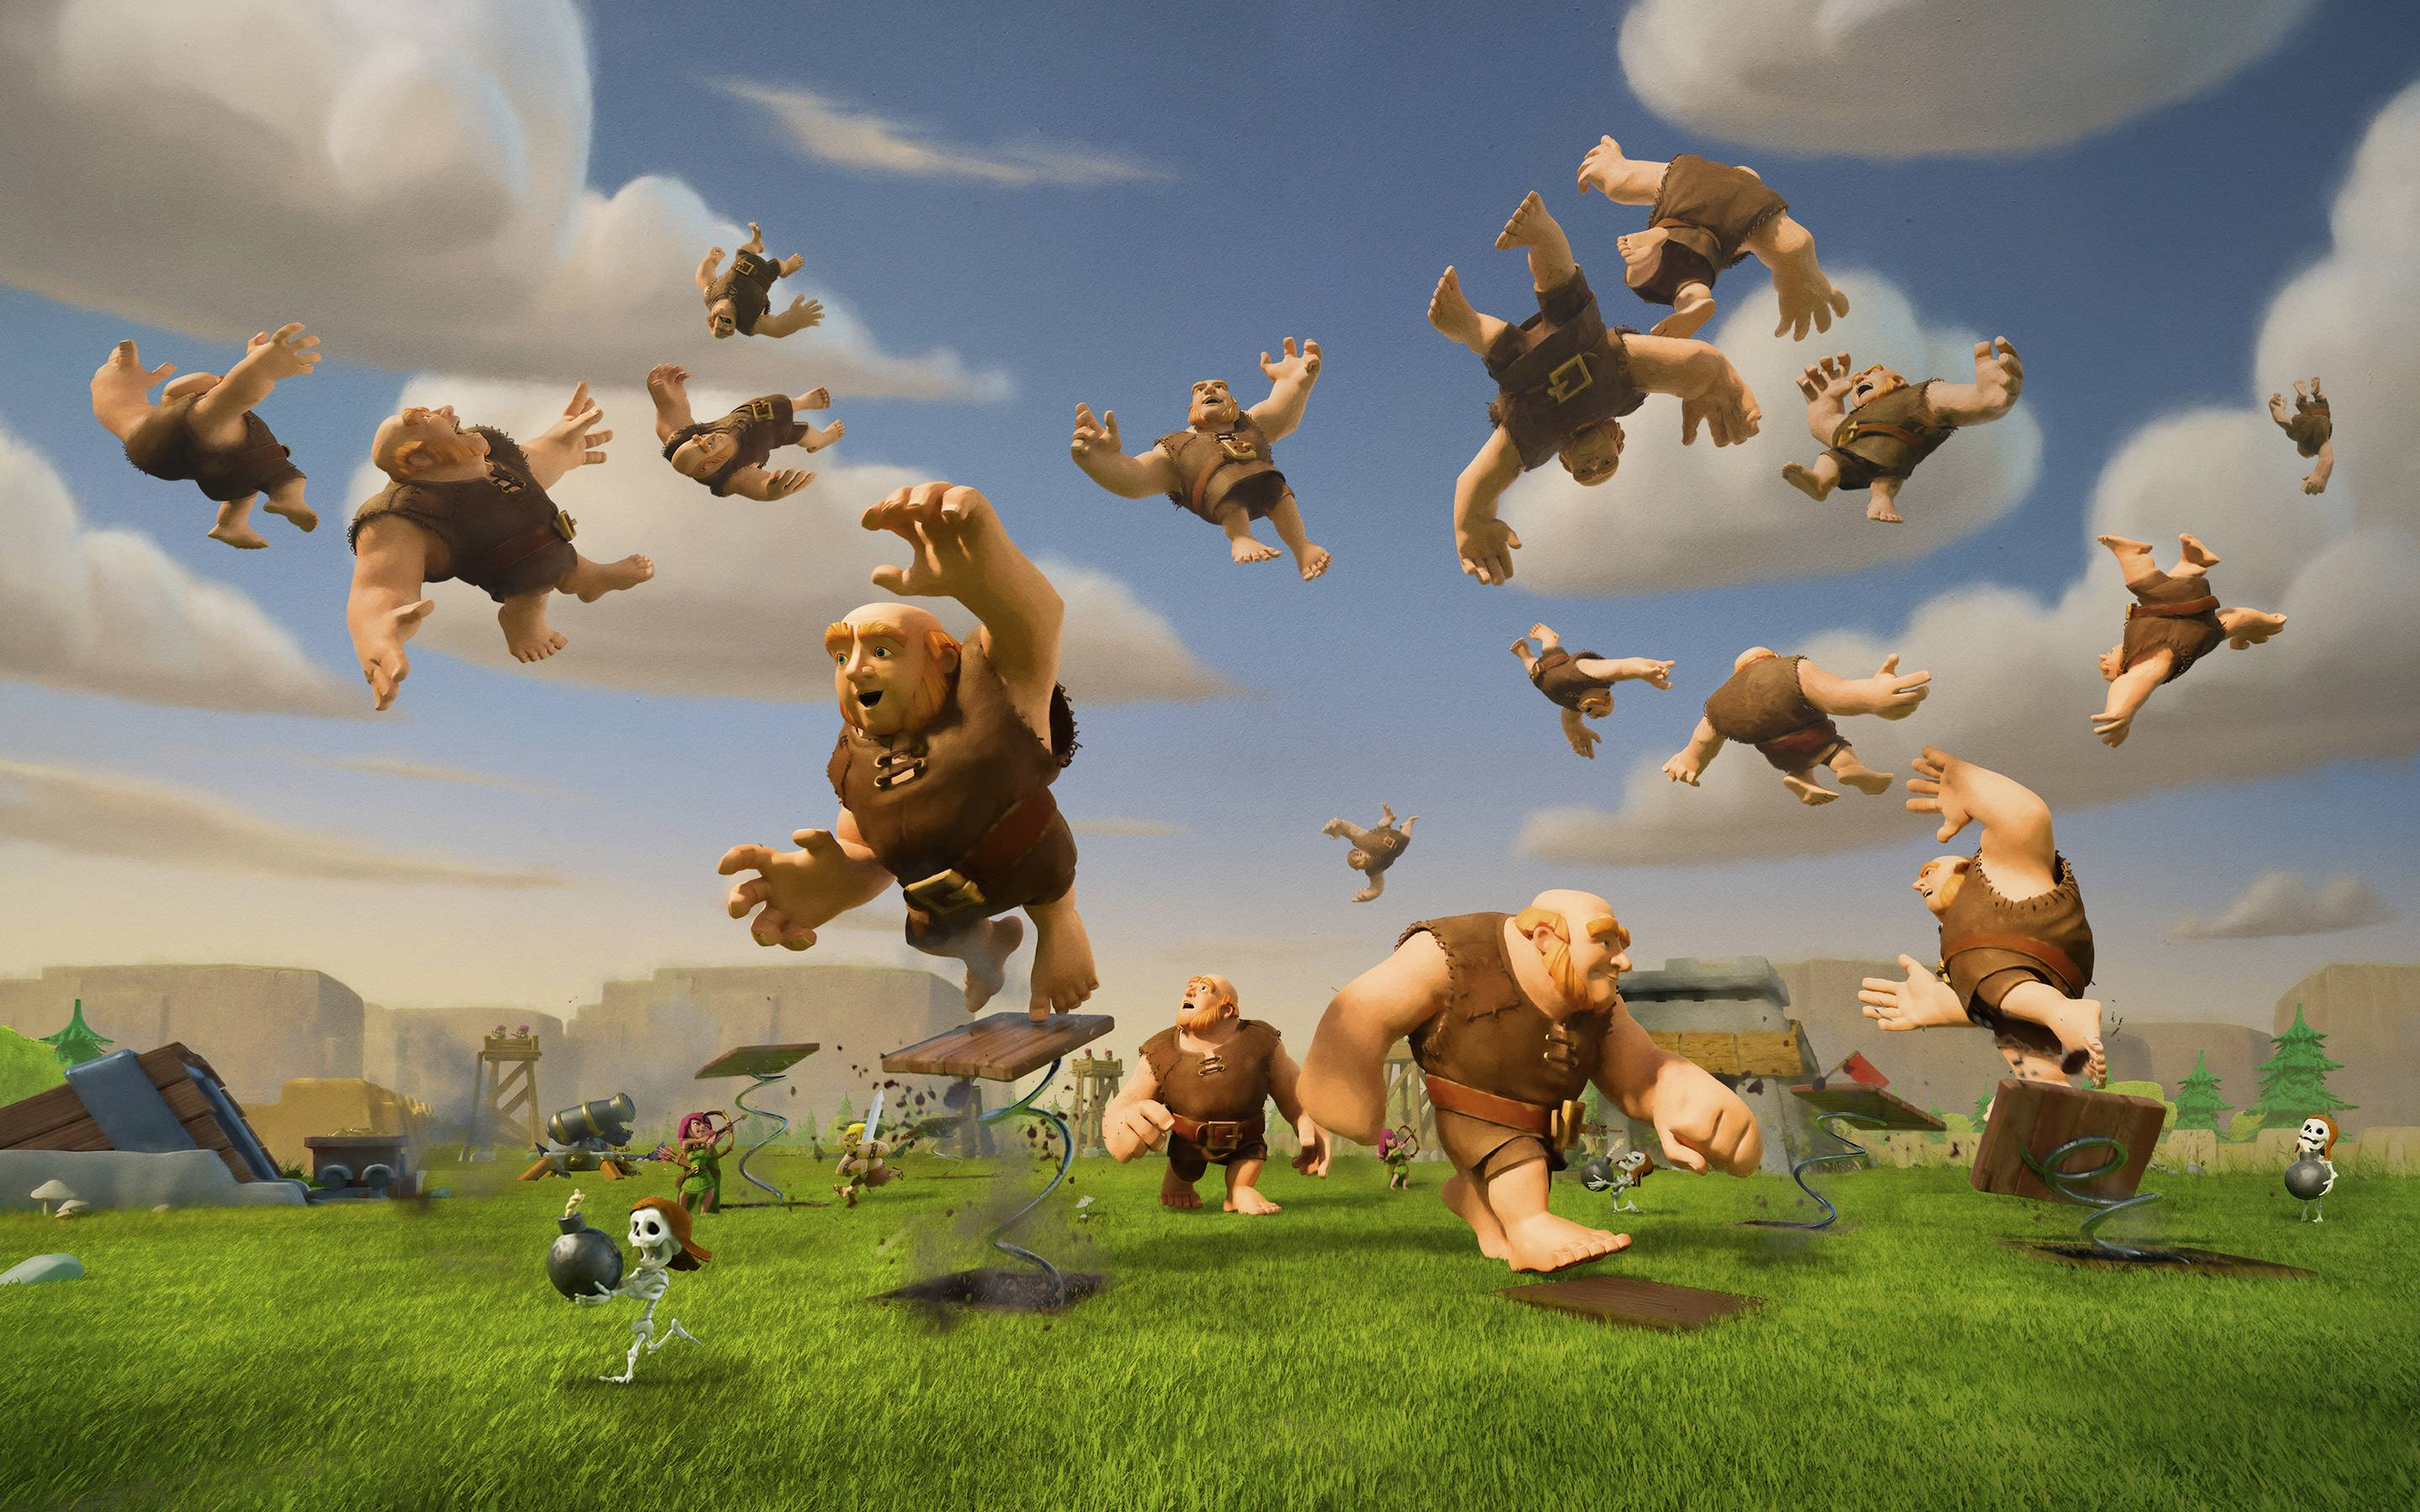 clash of clans wallpaper background hd 75